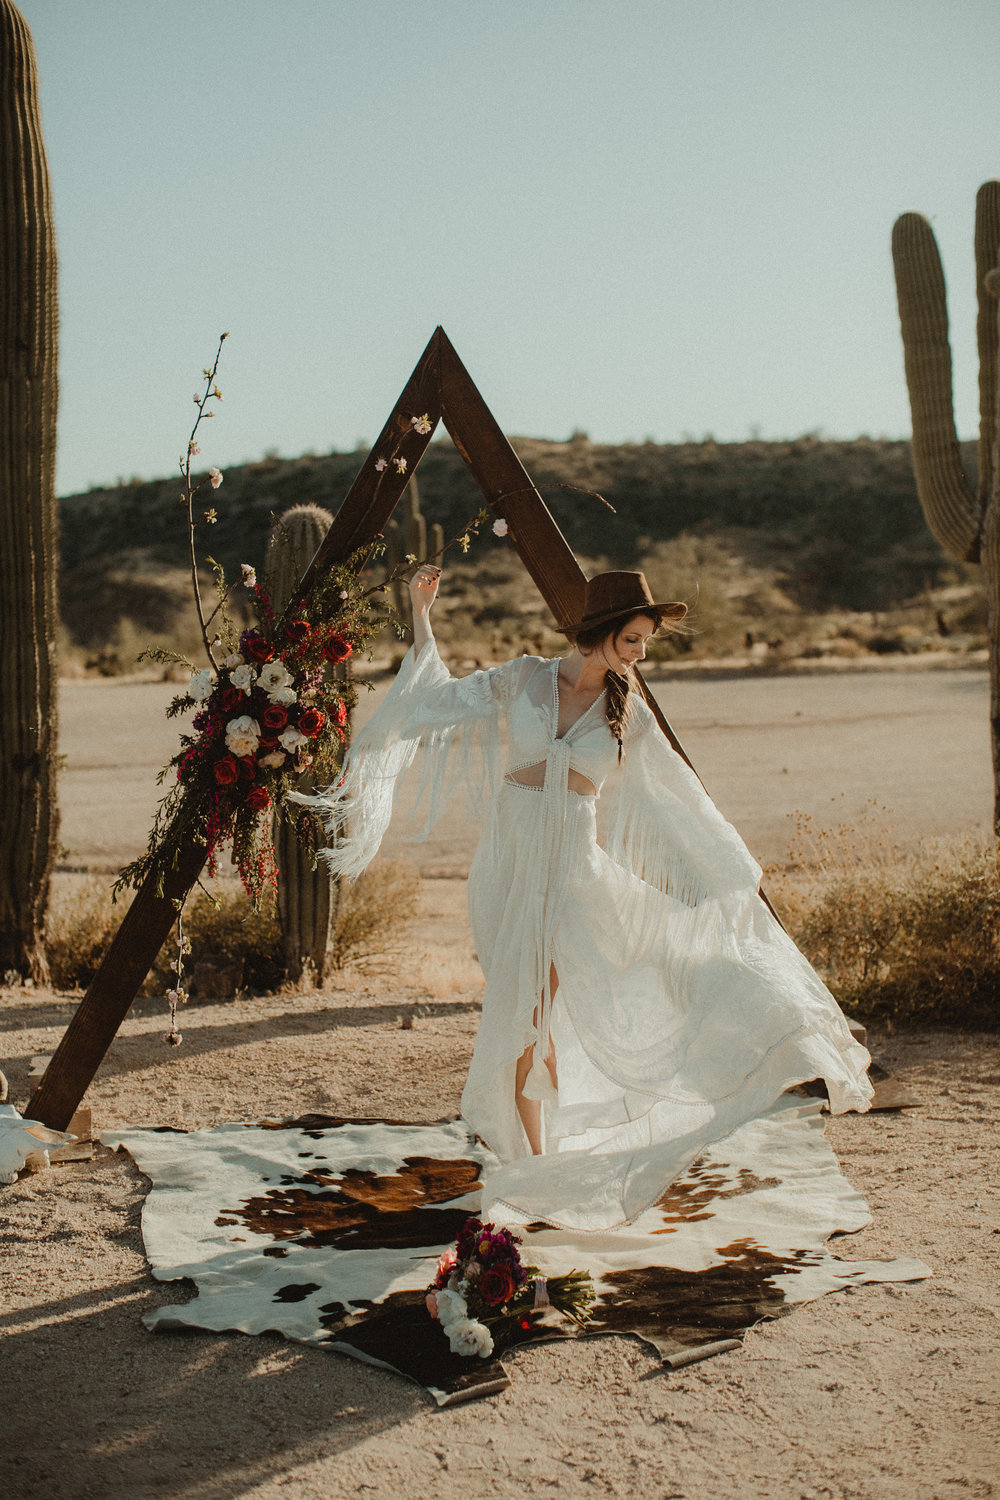 Desert Boho Vagabond Inspiration Shoot with Tremaine Ranch, From the daisies, Noir Floral, Phoenix, Arizona - Wedding & Event Rentals, Vintage, Specialty19.jpg